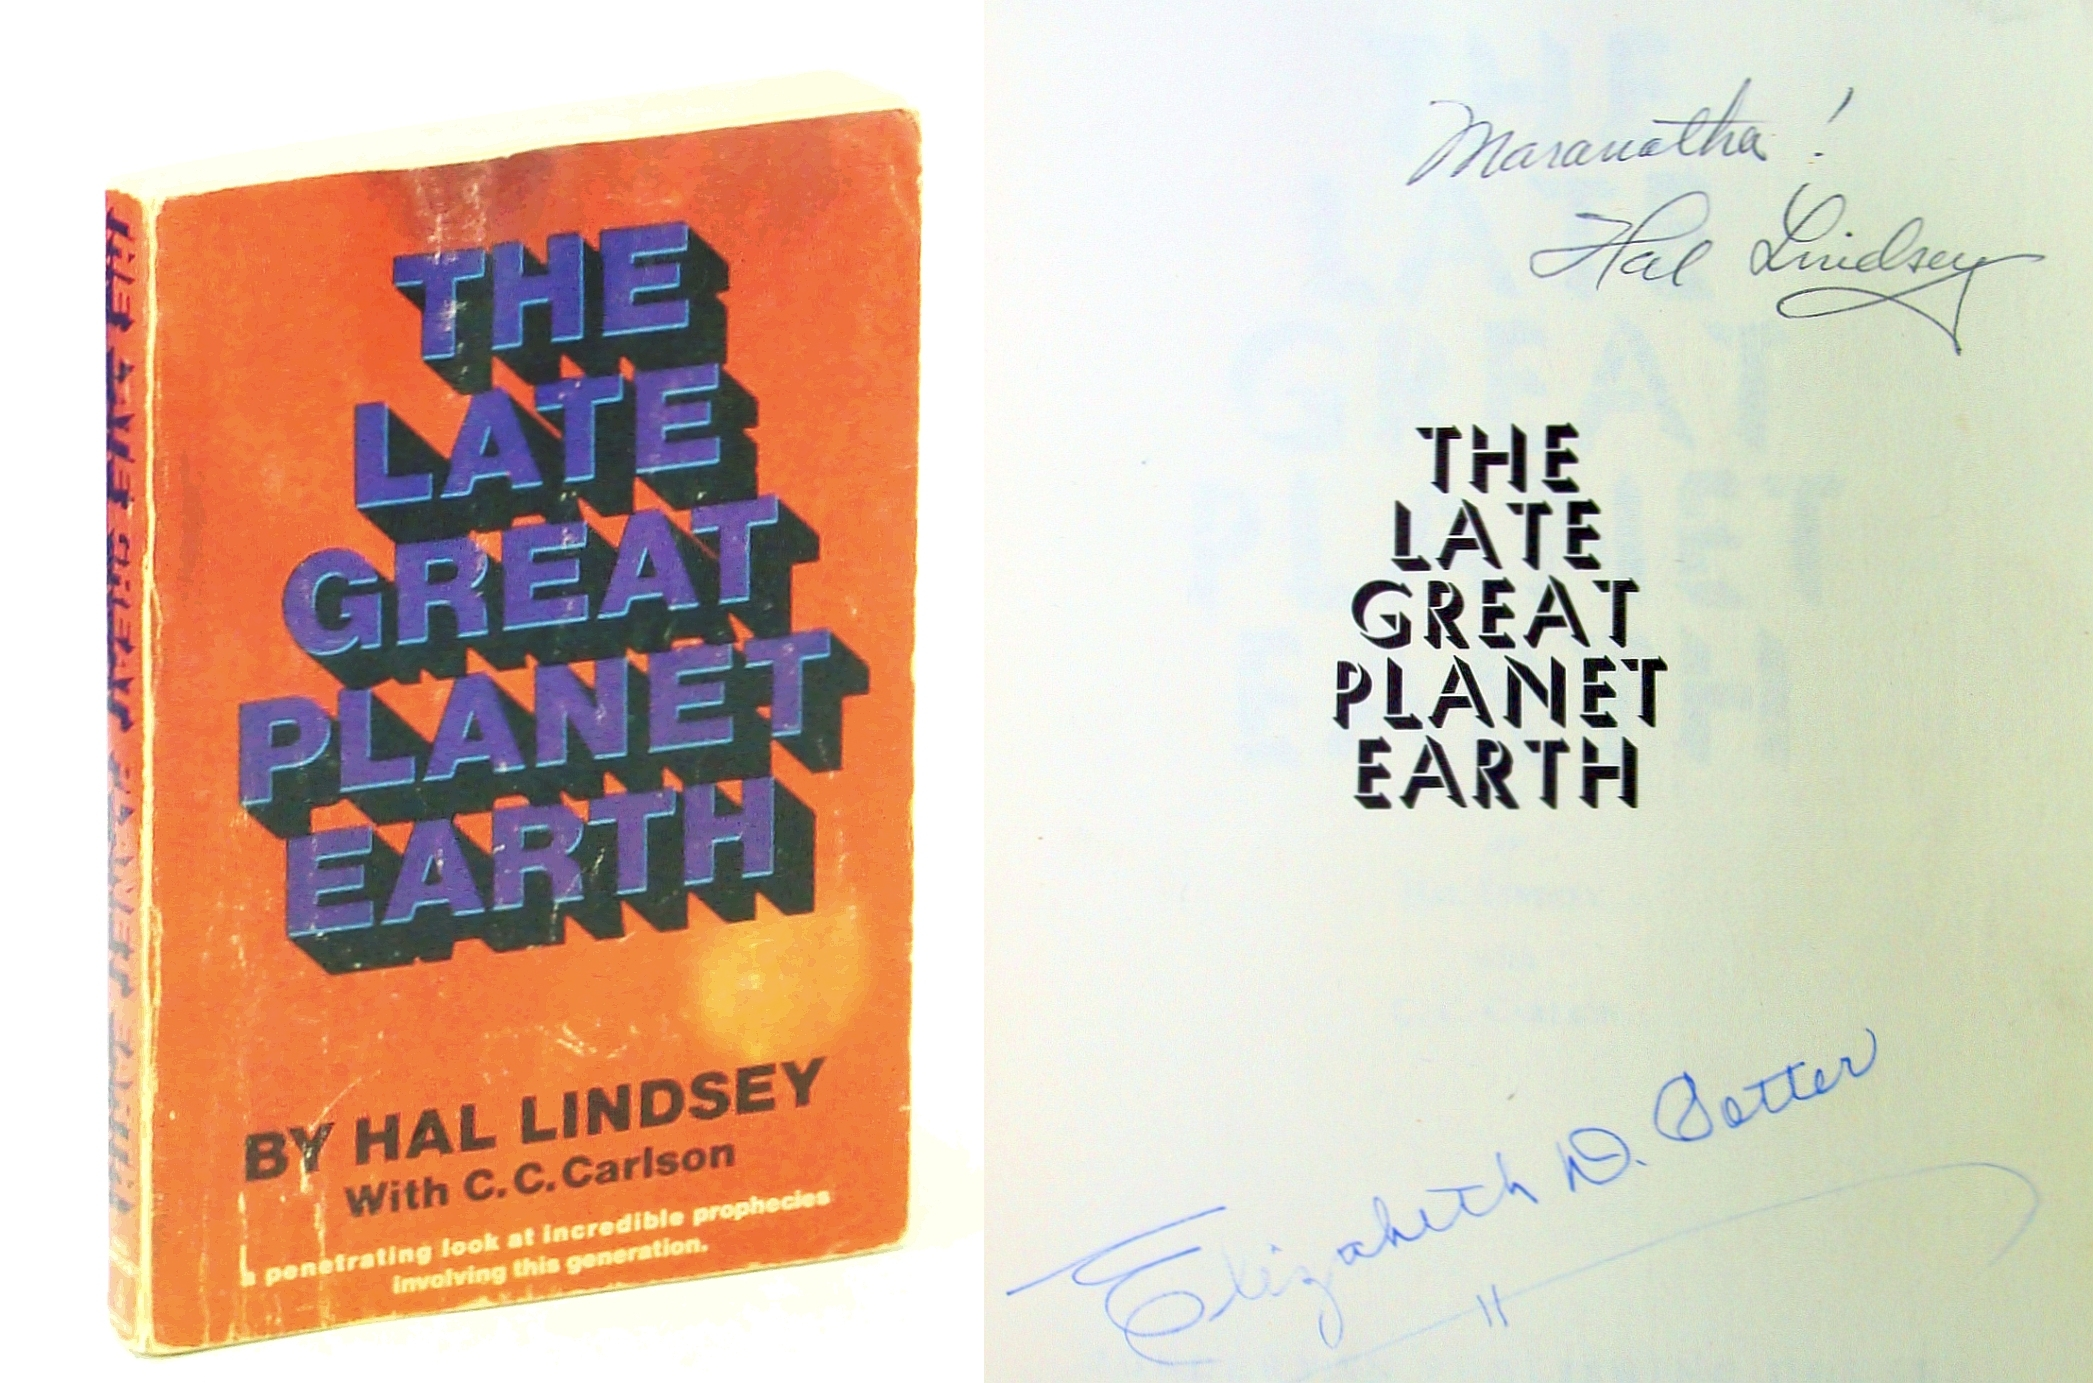 Image for Late Great Planet Earth by Hal Lindsey (1970-06-03)